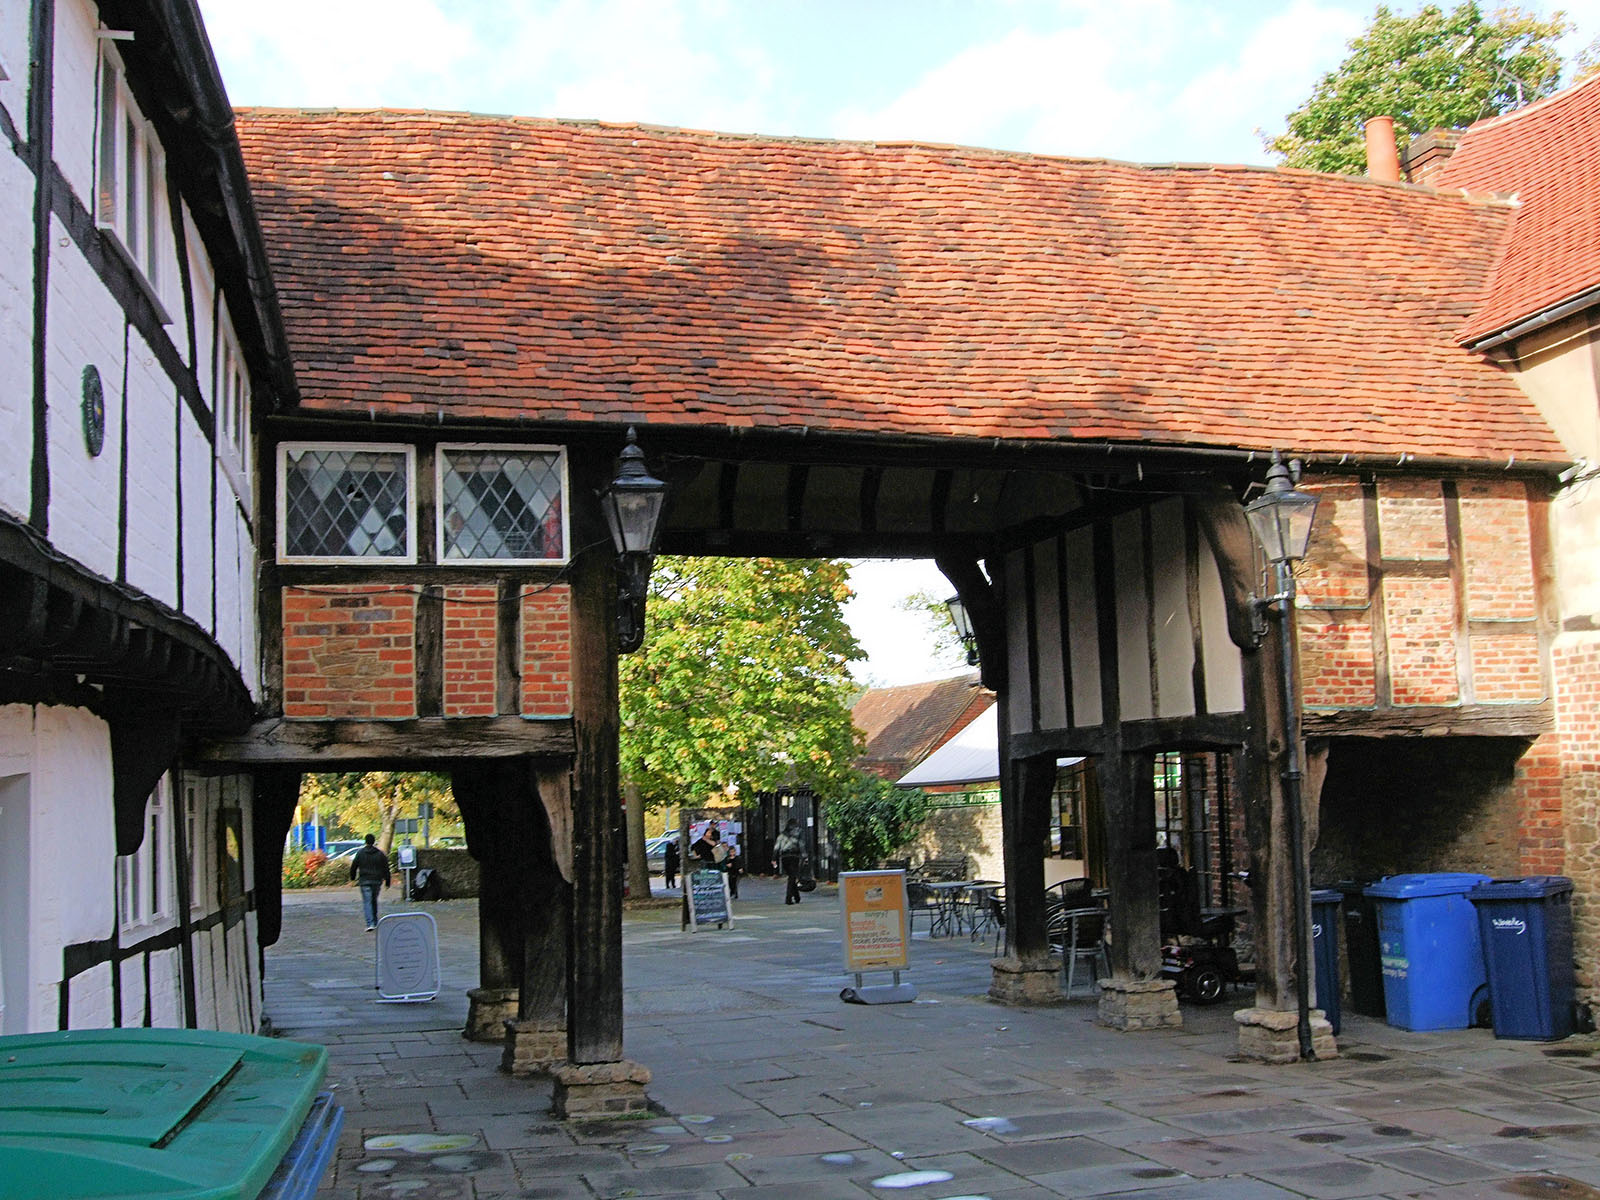 Tudor Buildings In Godalming.